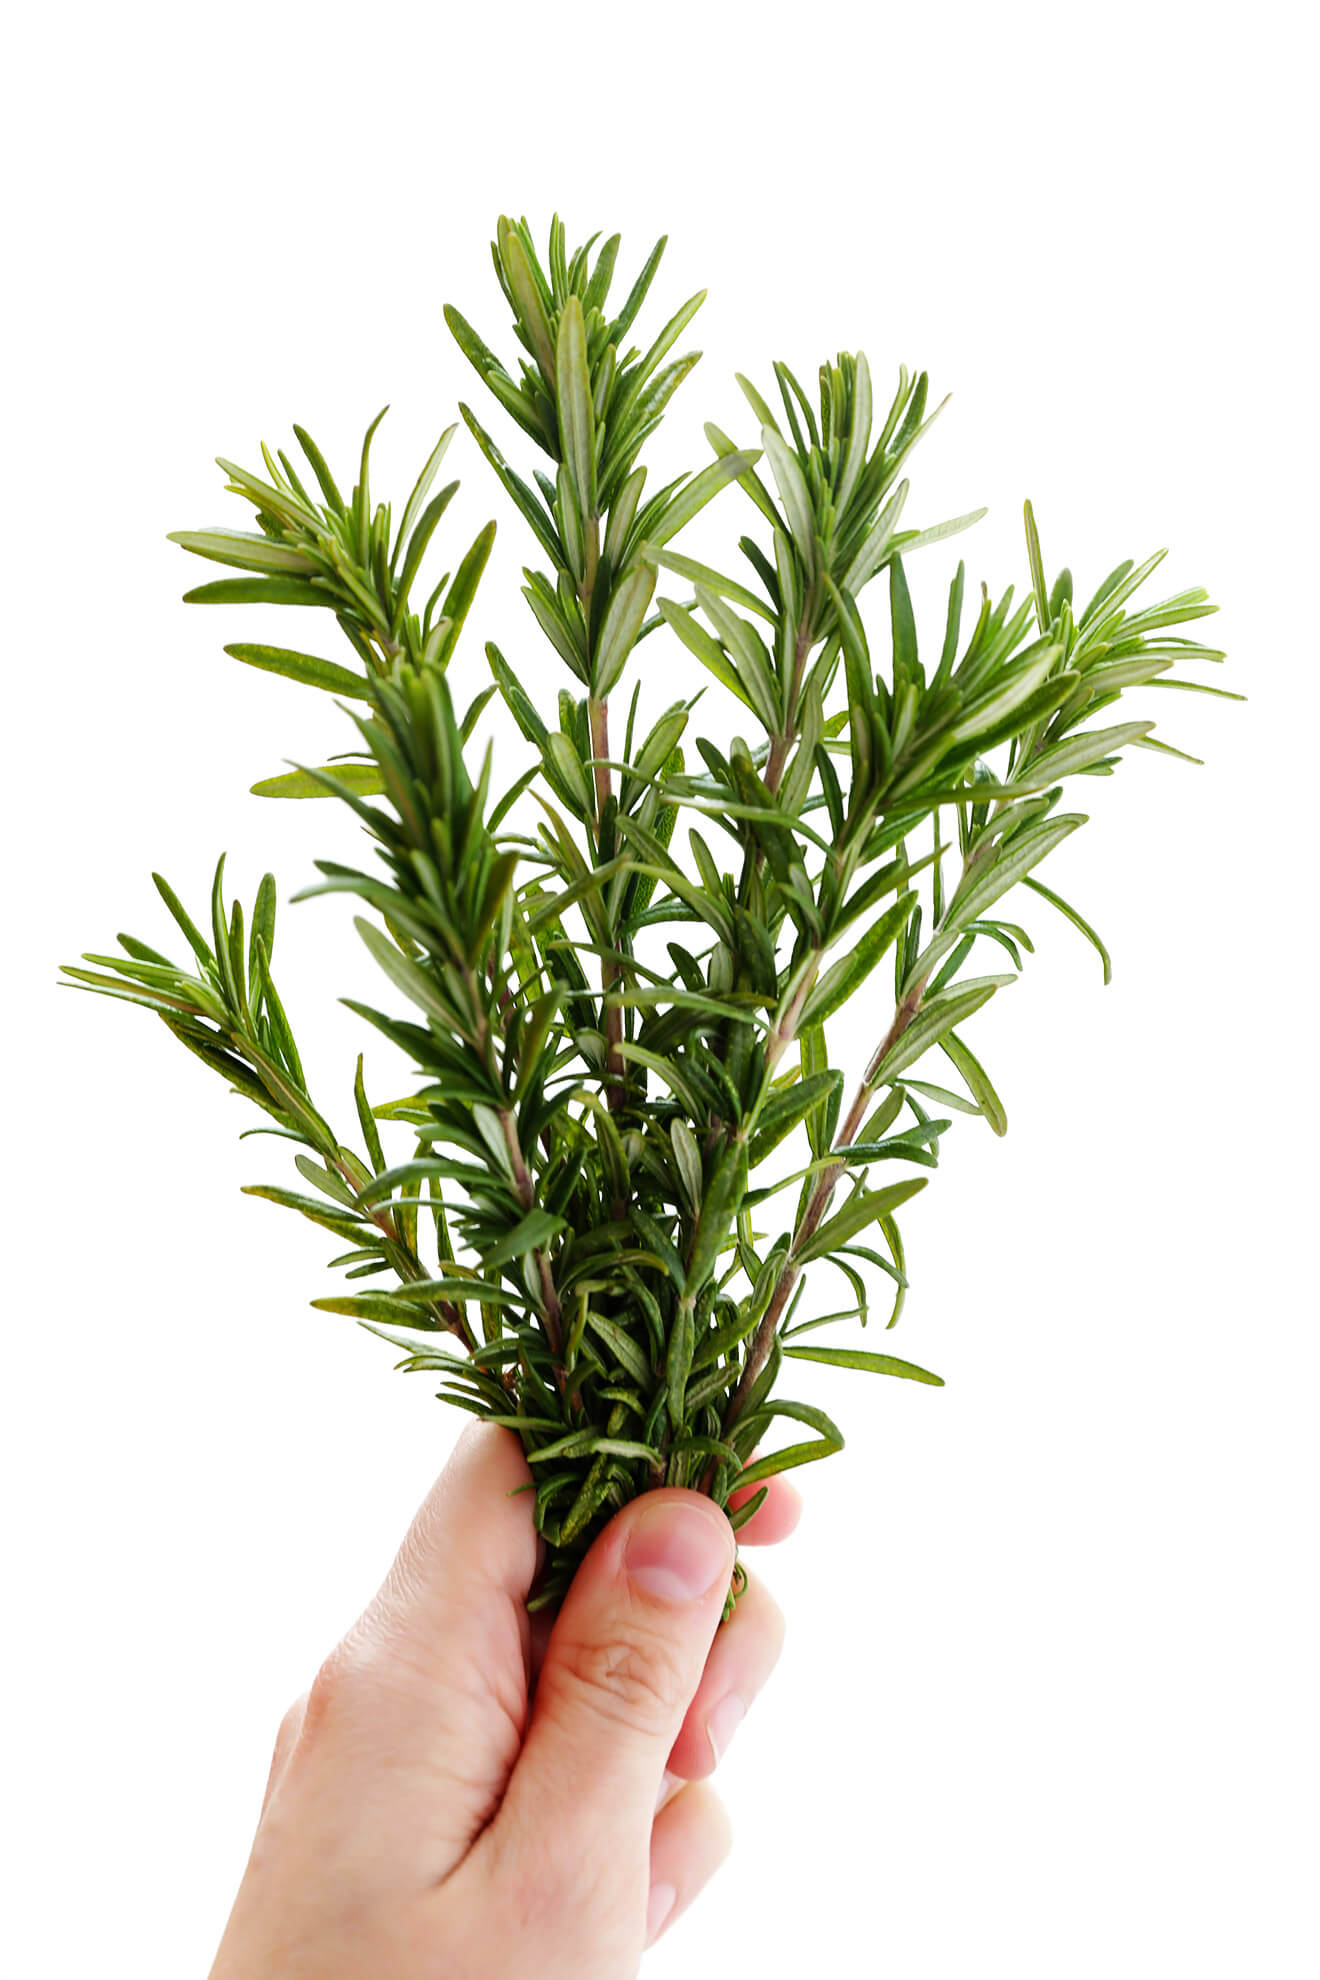 Fresh Rosemary Is The Starring Ingredient In This Delicious Focaccia Recipe Gimmesomeoven Com